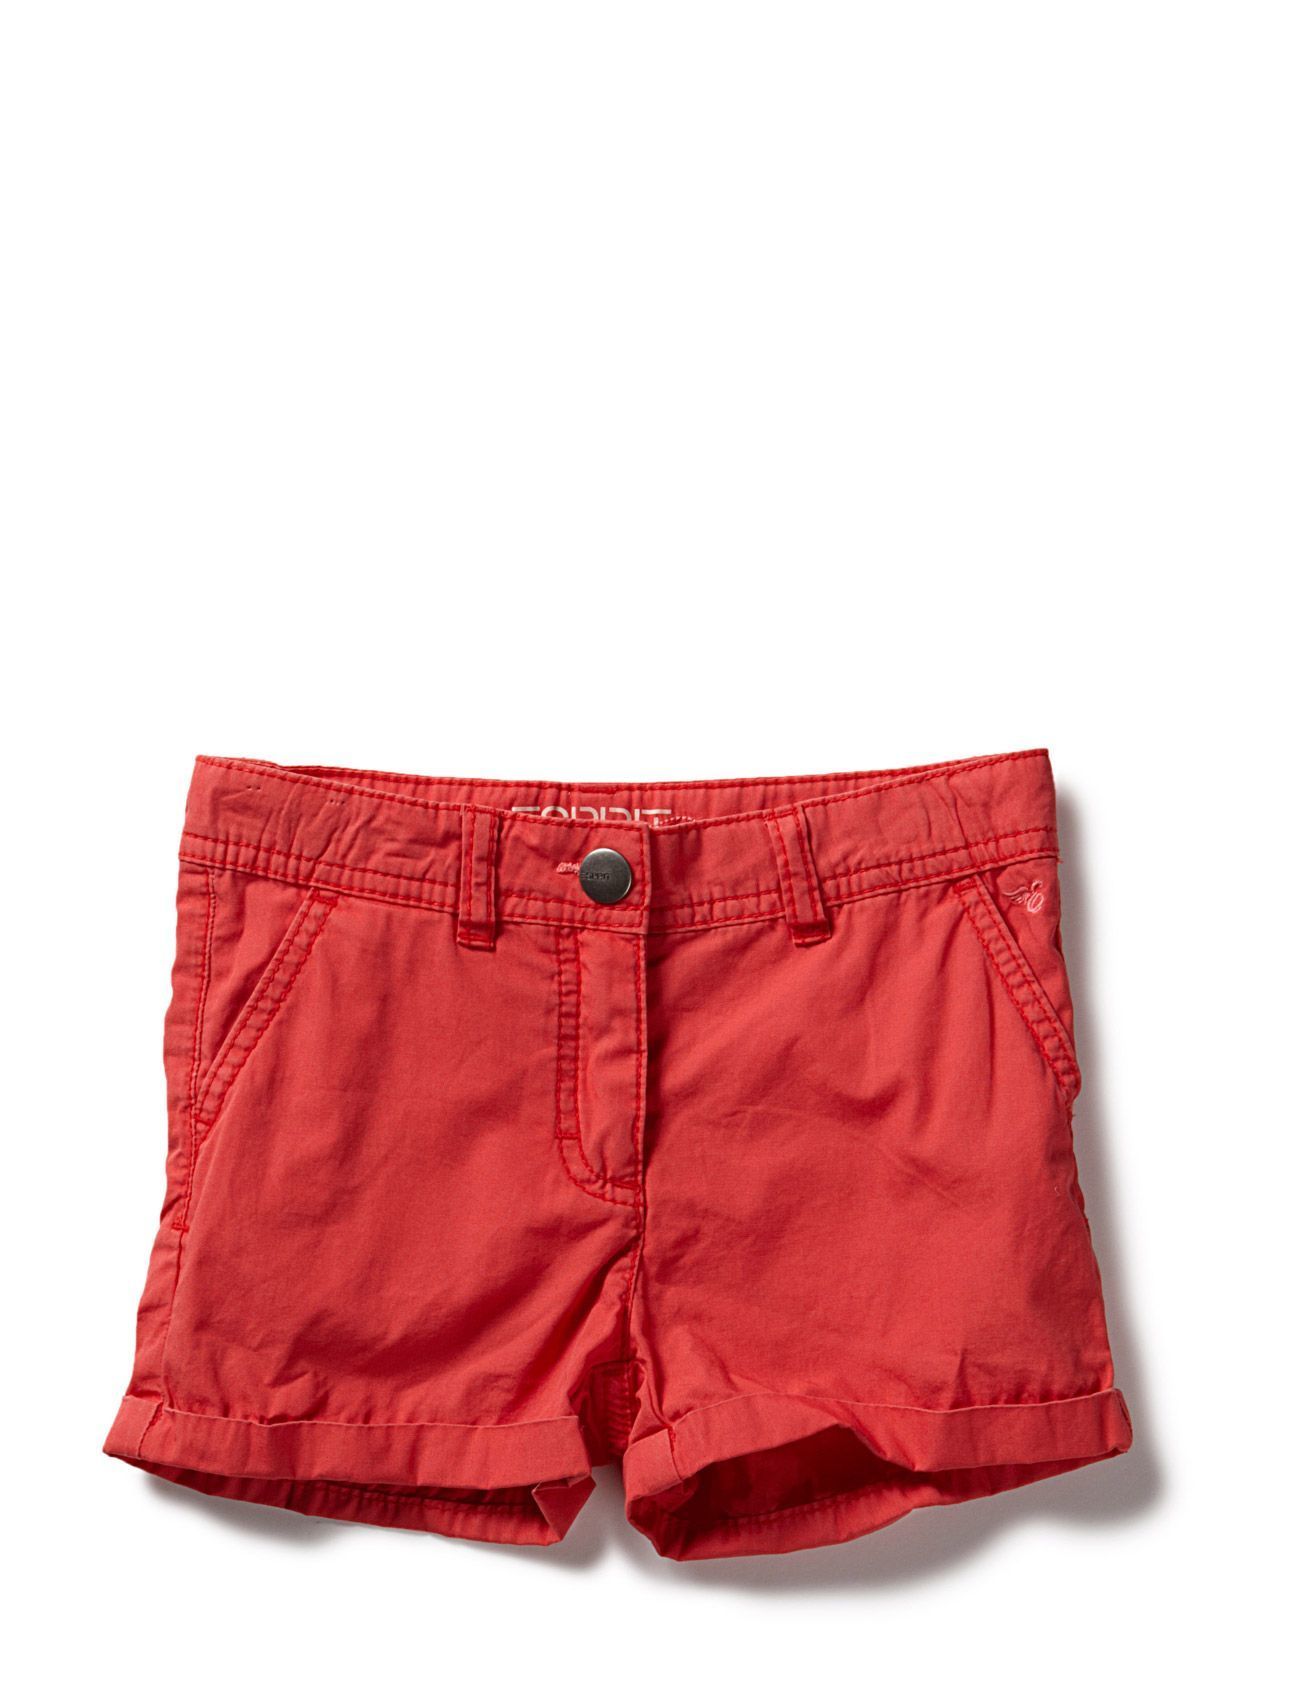 Esprit Kids Shorts